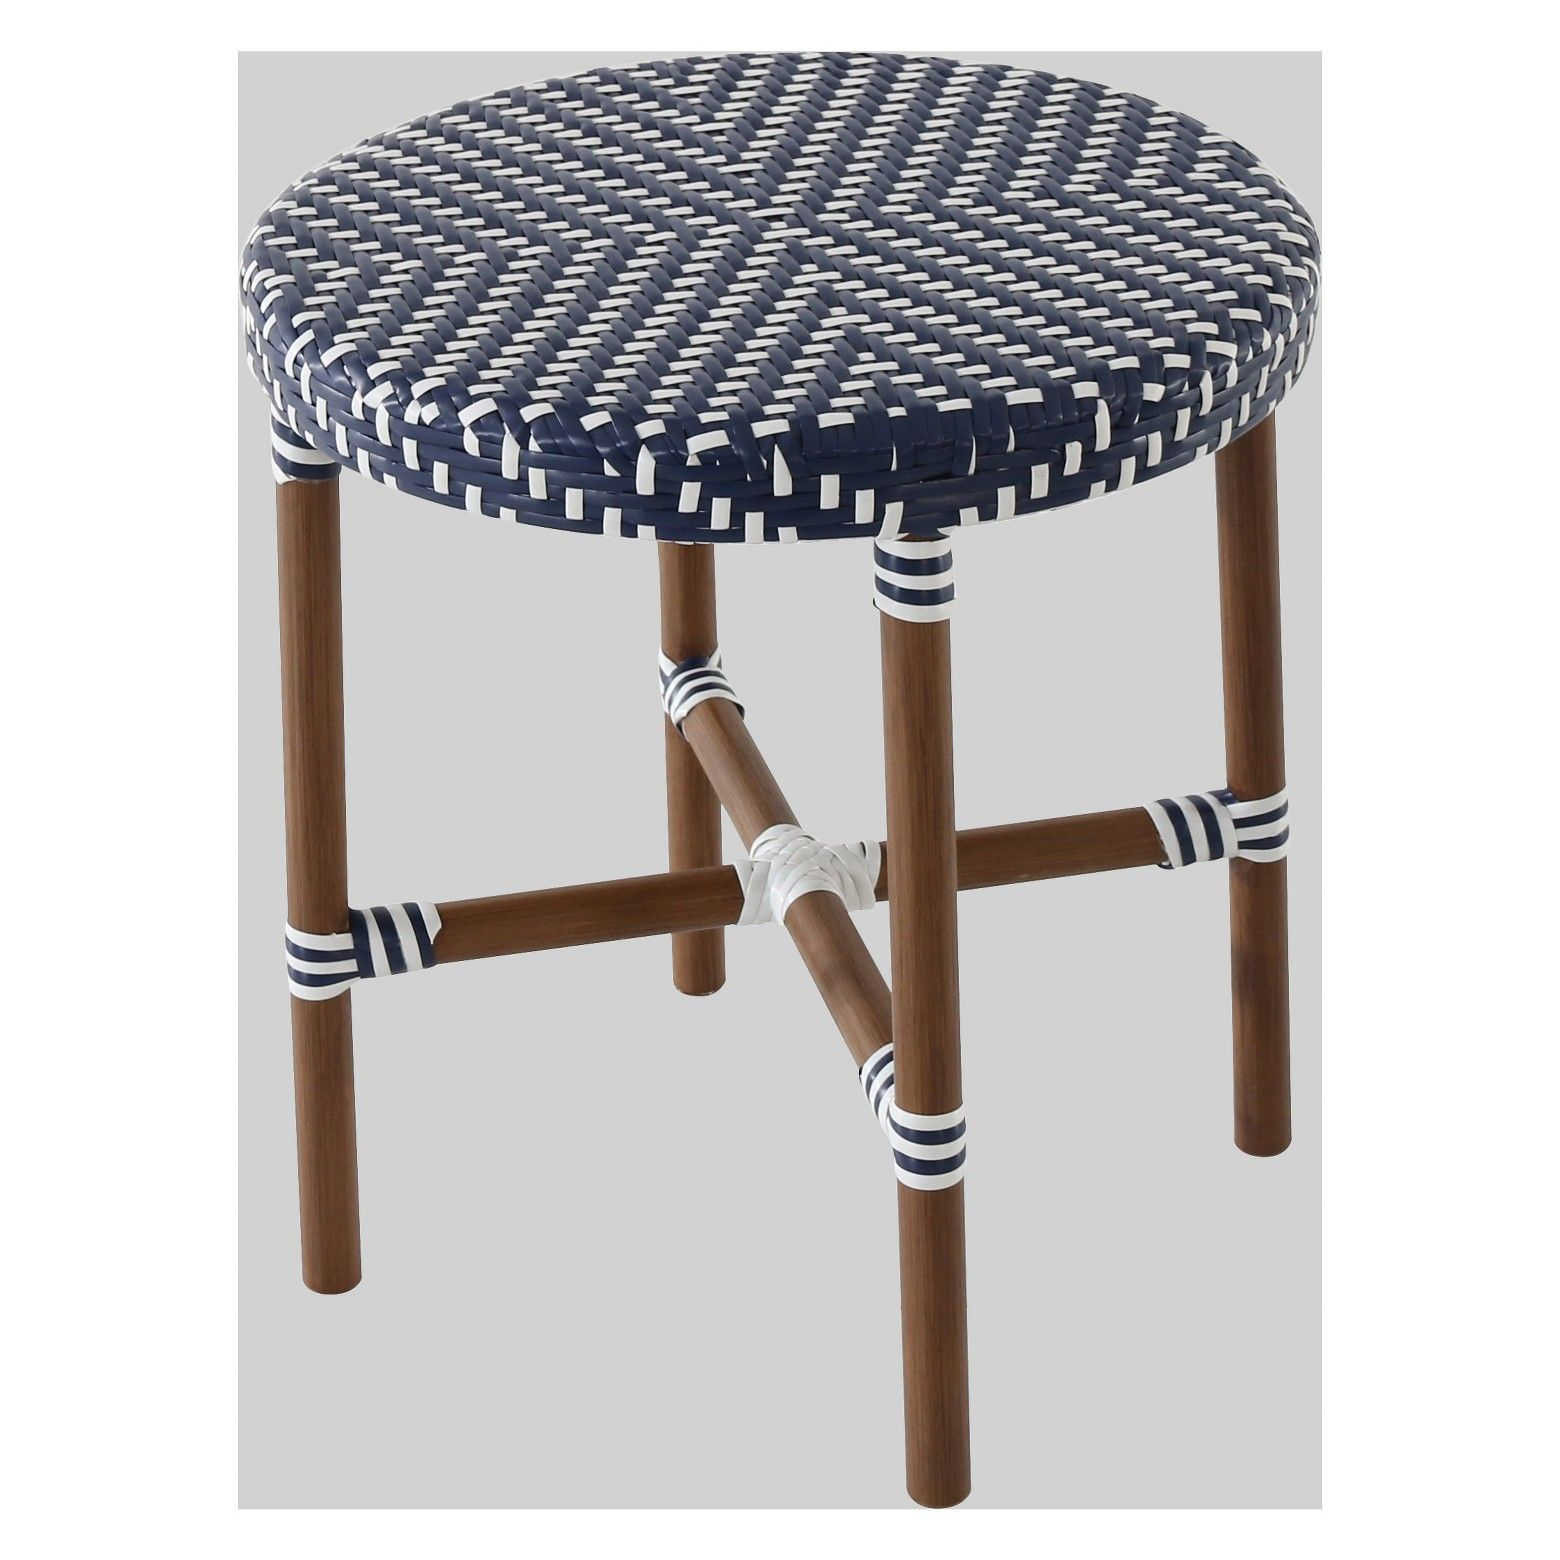 threshold french wicker patio accent table navy white tempered glass drop leaf small round antique dining gray nesting tables matching lamps charging console placemats and napkins